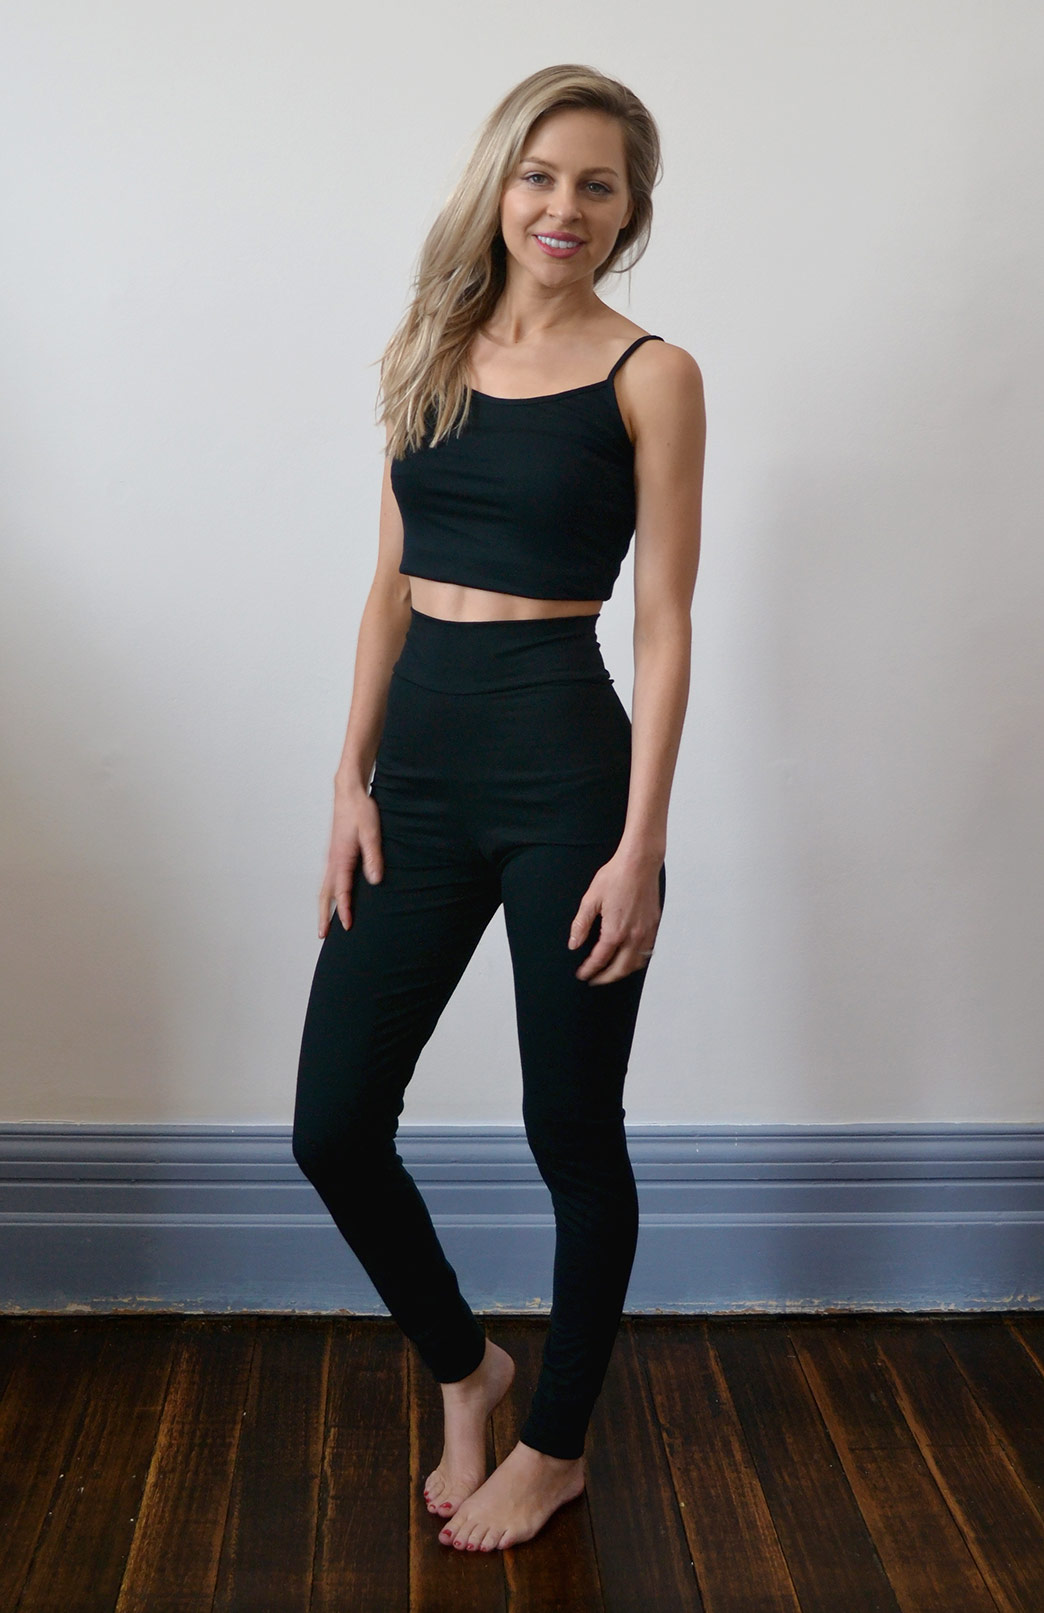 High Waisted Leggings - Fleece - Women's Black Fleece High Waisted Leggings with no pockets or fastenings - Smitten Merino Tasmania Australia